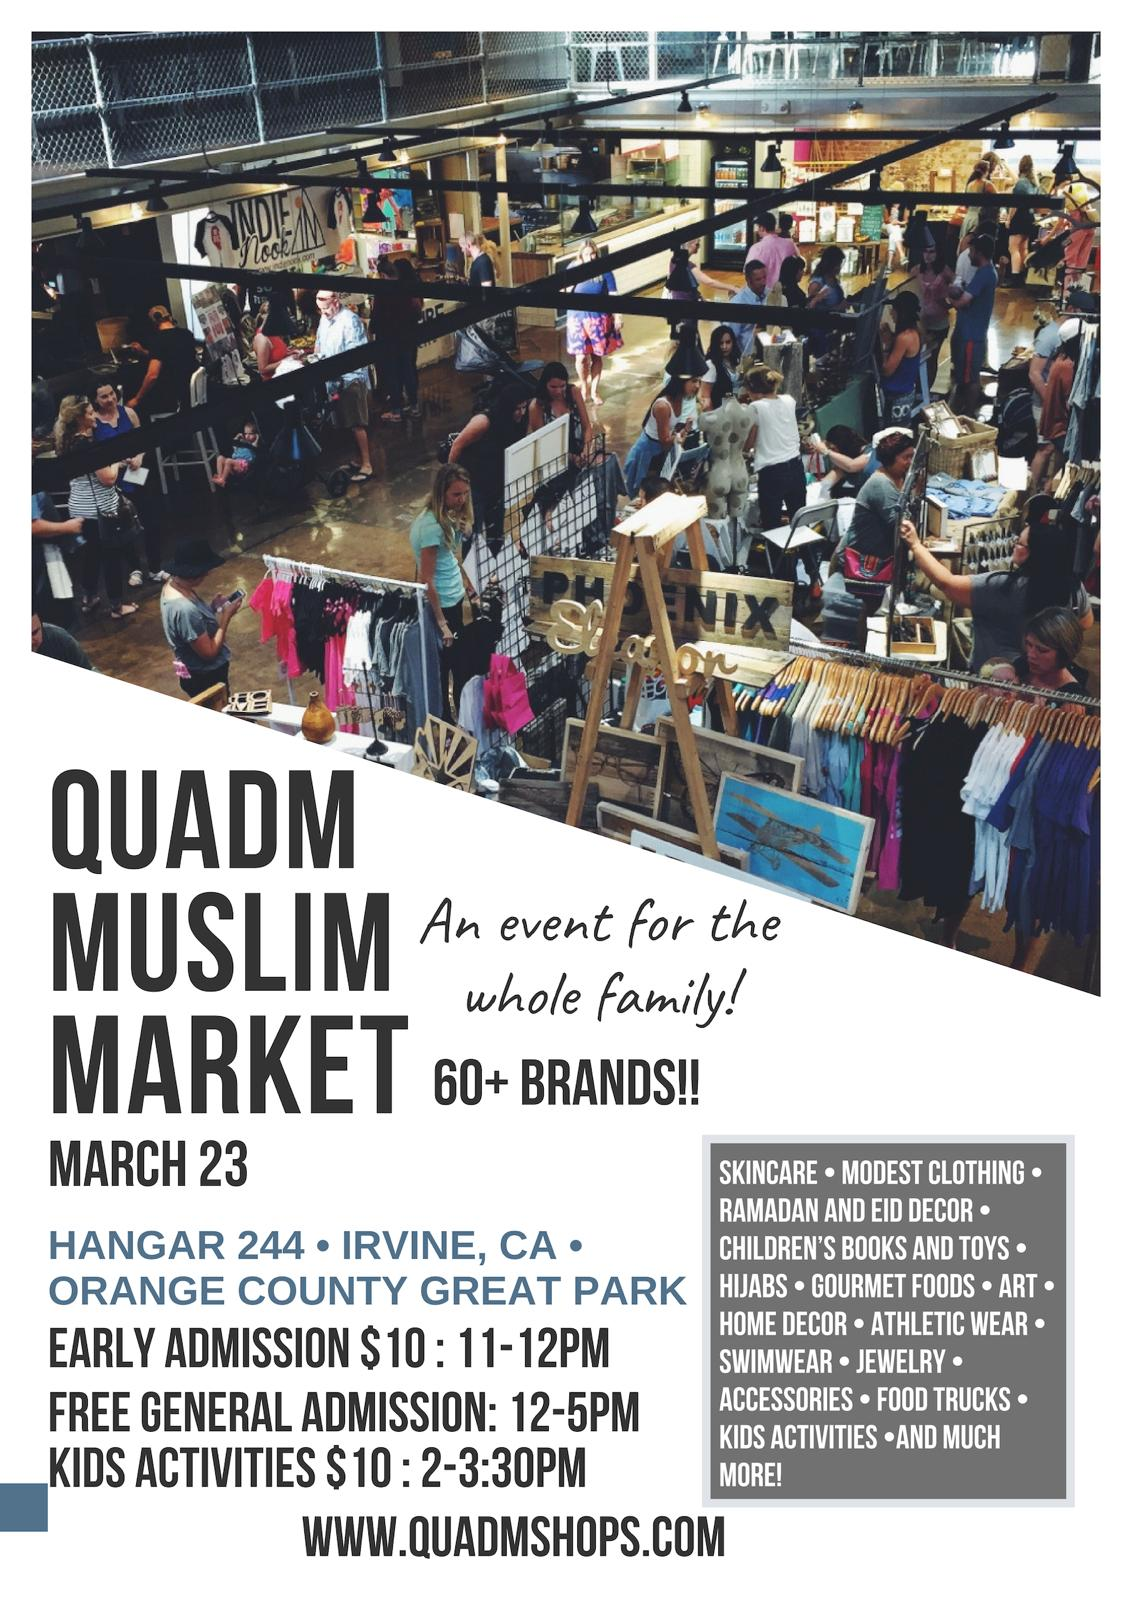 QUADM - 3/23/19 - QuadM Muslim Market is Southern California's LARGEST Muslim Family Market featuring 60+ amazing female Muslim vendors with everything from Islamic home decor, clothes, jewelry, children's items, food, desserts, books and more! A fun event for the entire family! Bring the family so the kids can play at the beautiful outdoors of the Orange County Great Park with lush green fields, a balloon ride and a carousel while parents enjoy socializing with the community and shopping! Come support our local community and their talents in a way that is fun for the whole family! We will be featuring a few vendors from out of state as well.This is a FREE event but there is a ticket for Early Bird admittance. Details below - 11am to 12pm - Special discounts, giveaways and kid free shopping - $10 ticket available for purchase below :https://www.quadmshops.com/product-page/early-bird-attendee-ticket12pm to 5pm - FREE FOR EVERYONE! Free Parking as well. Location - Hangar 244Orange County Great Park 8000 Great Park Blvd, Irvine CAKids activities - 2pm - Fun fitness activity with Physical Fitness Trainer Kifah Muhammad @getfitwithkifah2:30pm - Hands on nature activity with Nature Specialist Ahmed Pierstoff @dustandtribePurchase tickets at the link below - $10 per child (4 to 11)www.quadmshops.com/product-page/quadm-kids-activity